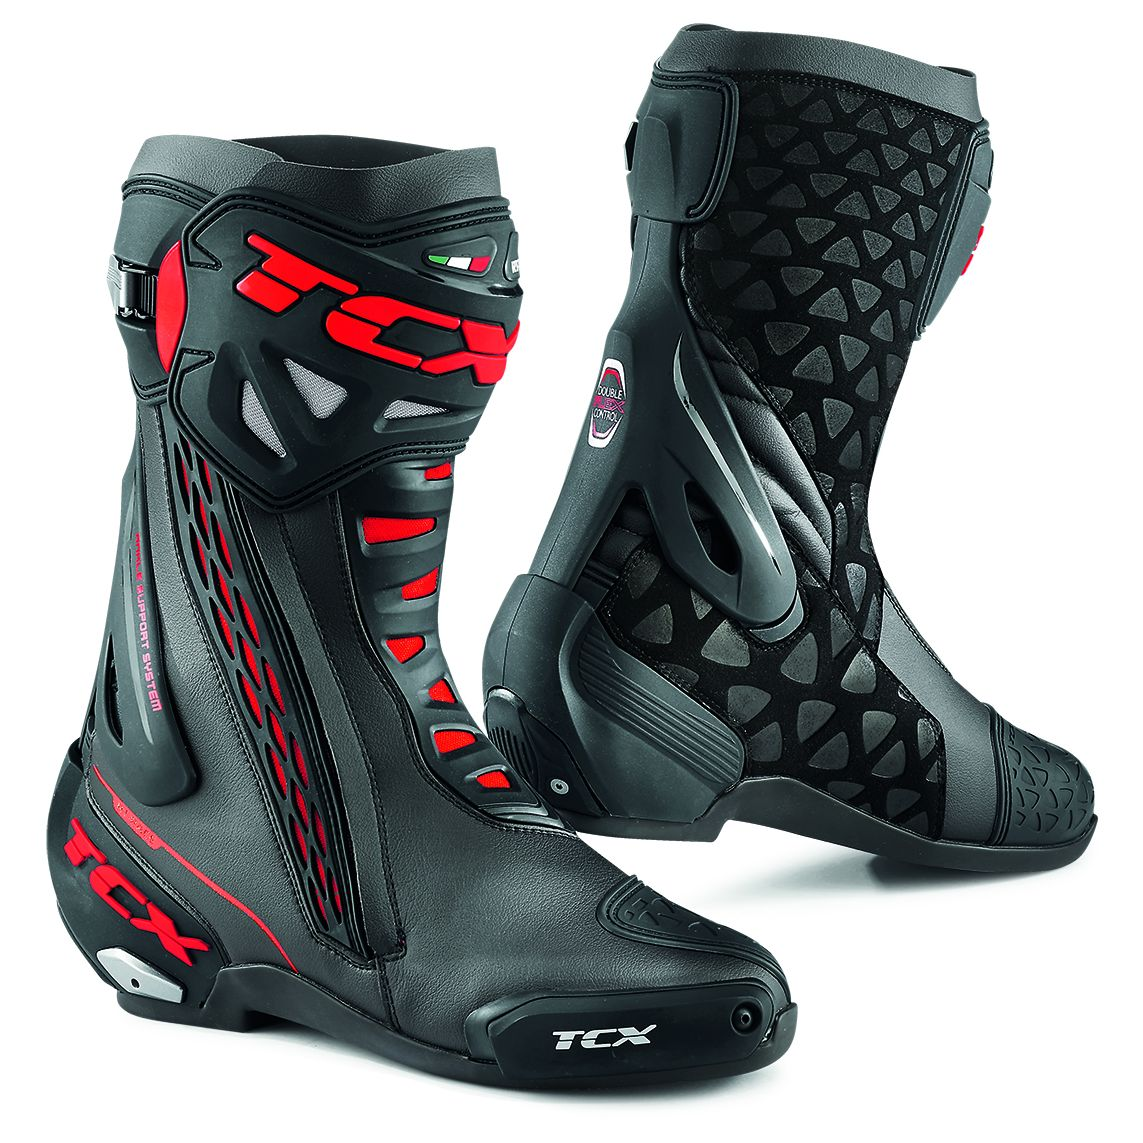 Bottes Tcx Race Equipement Du Rt Pilote Access Boots fgv7y6Yb